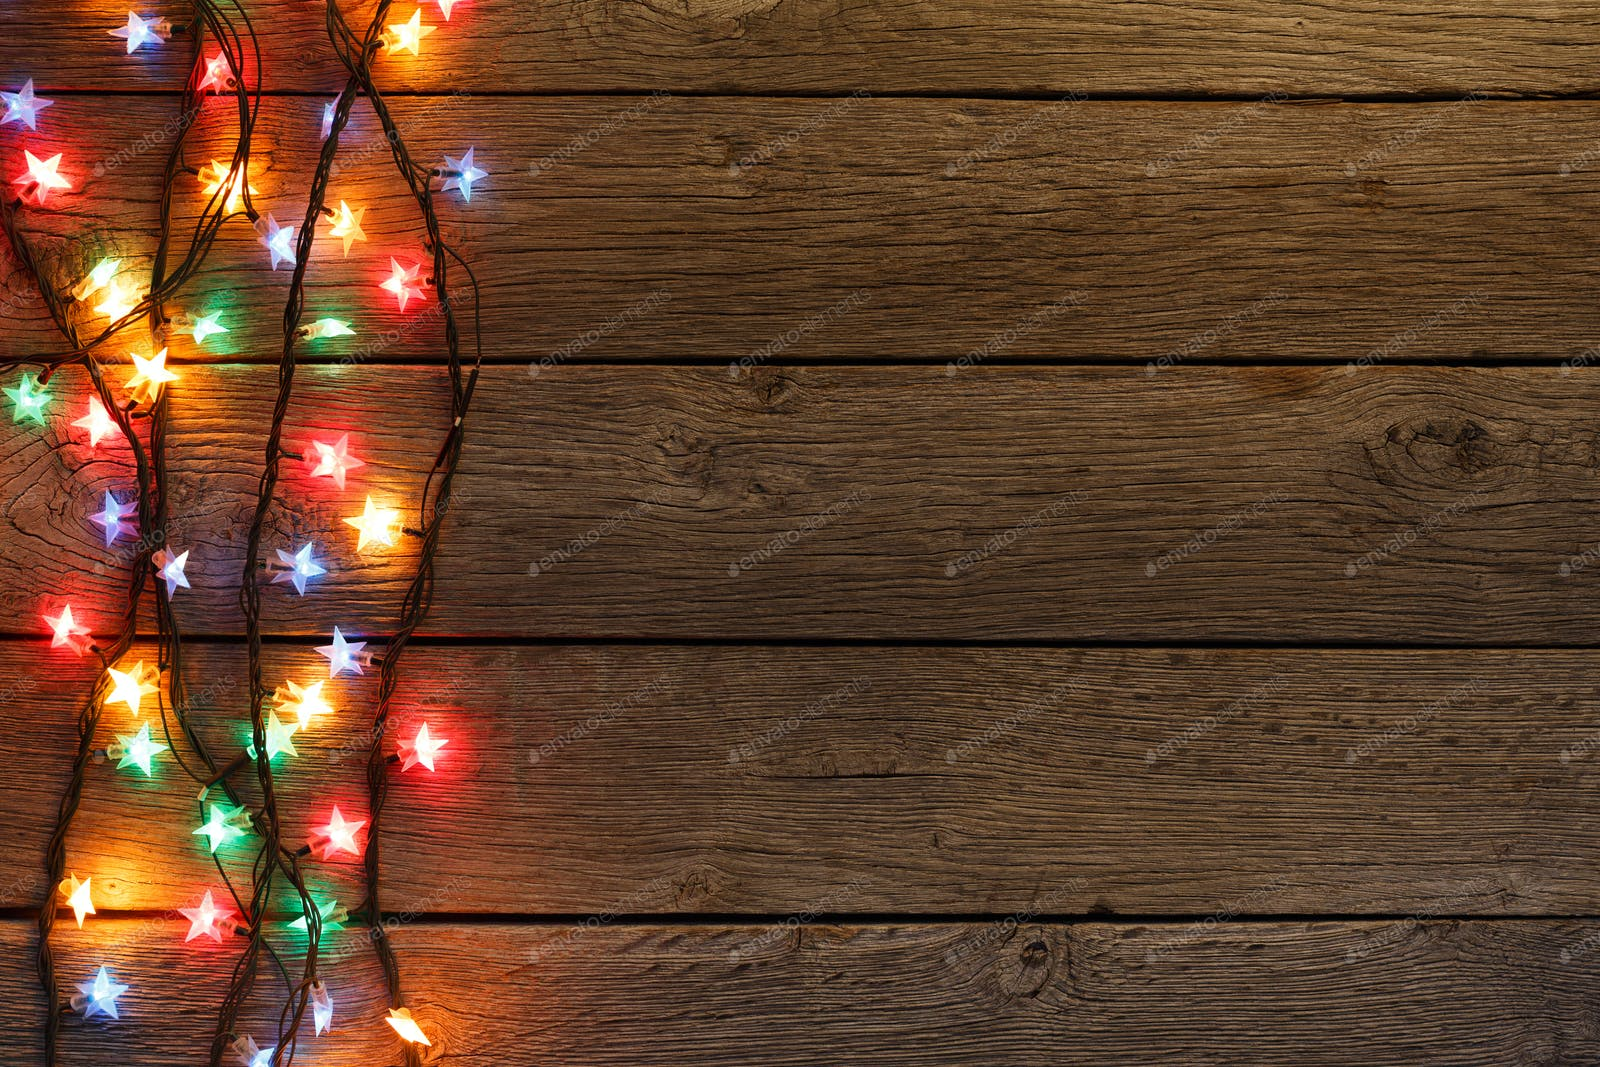 10+ Christmas Lights Background